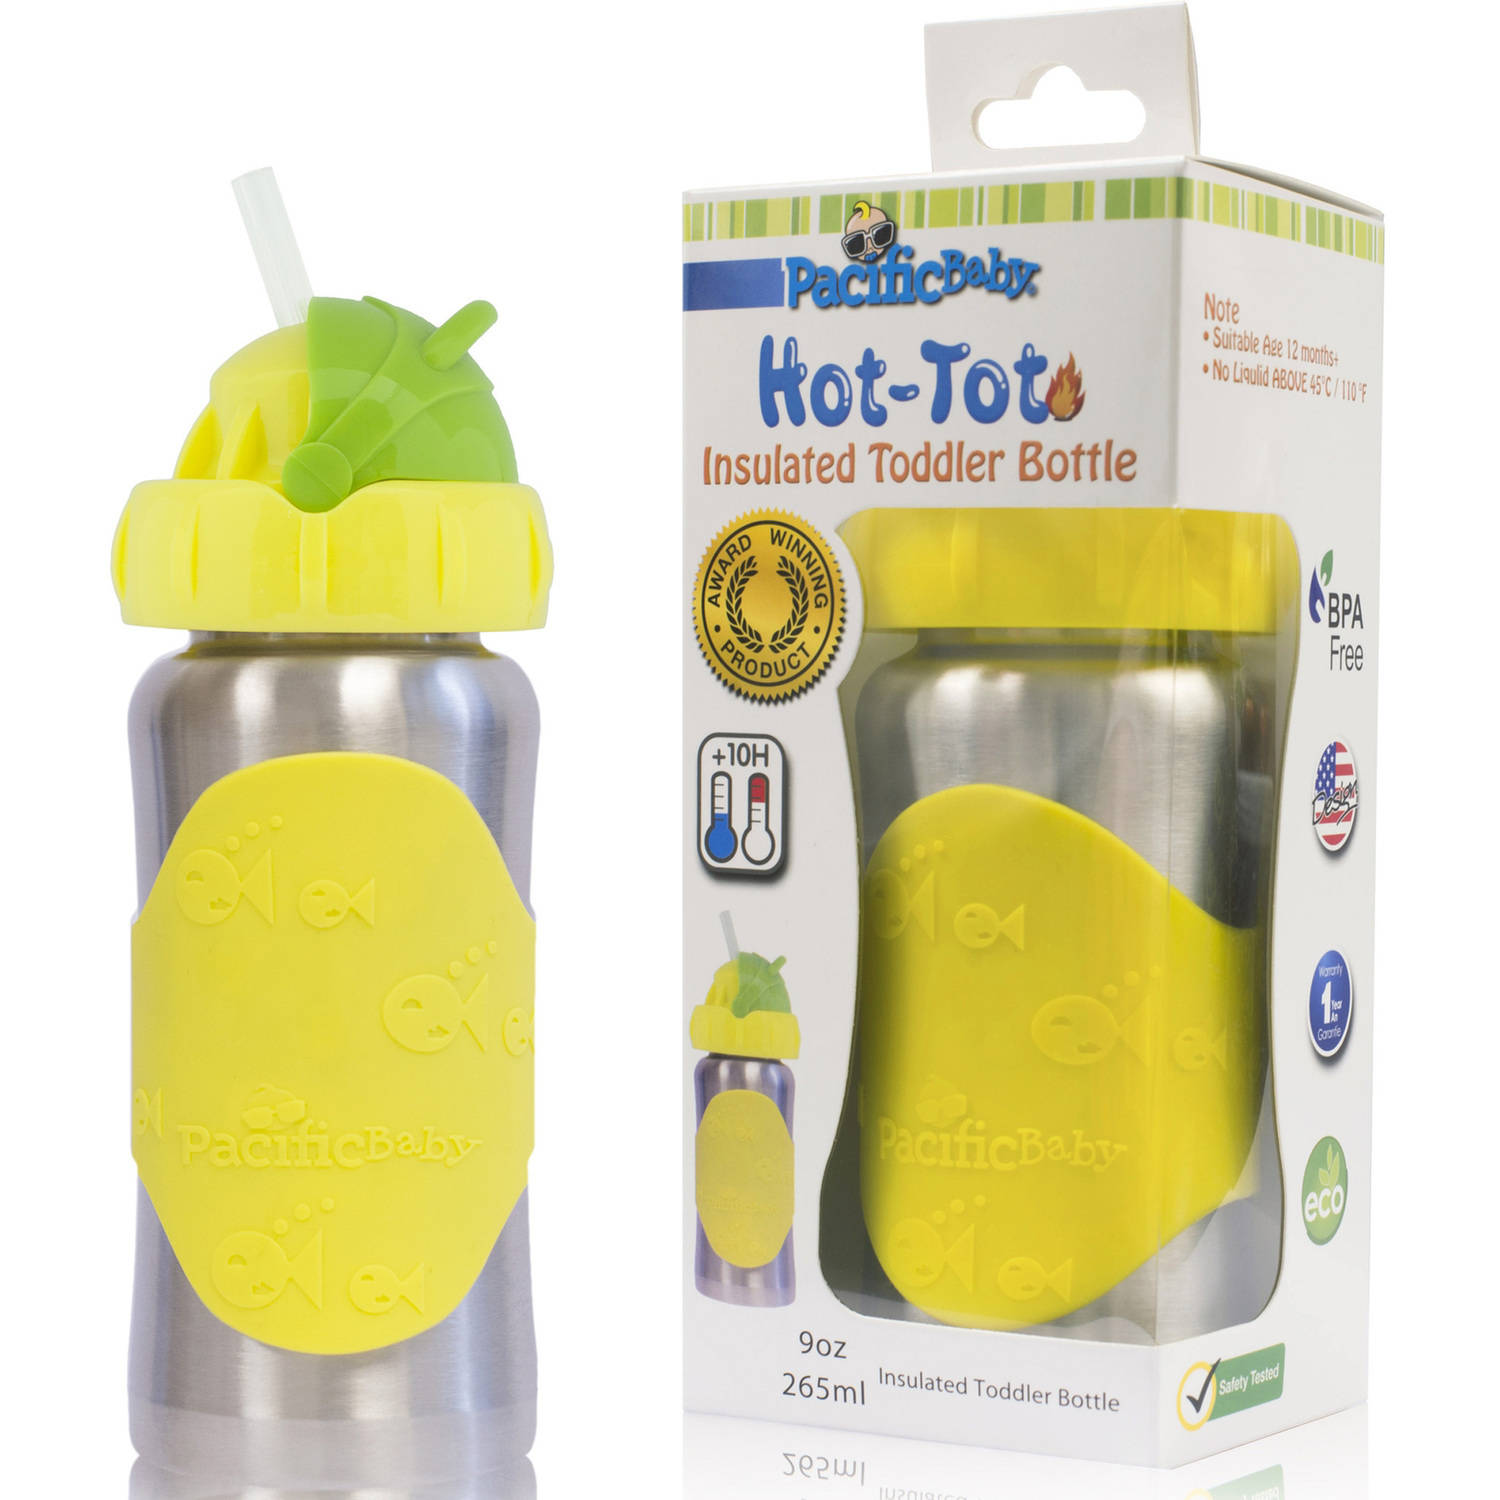 Pacific Baby Hot-Tot 9-oz Insulated Toddler Bottle